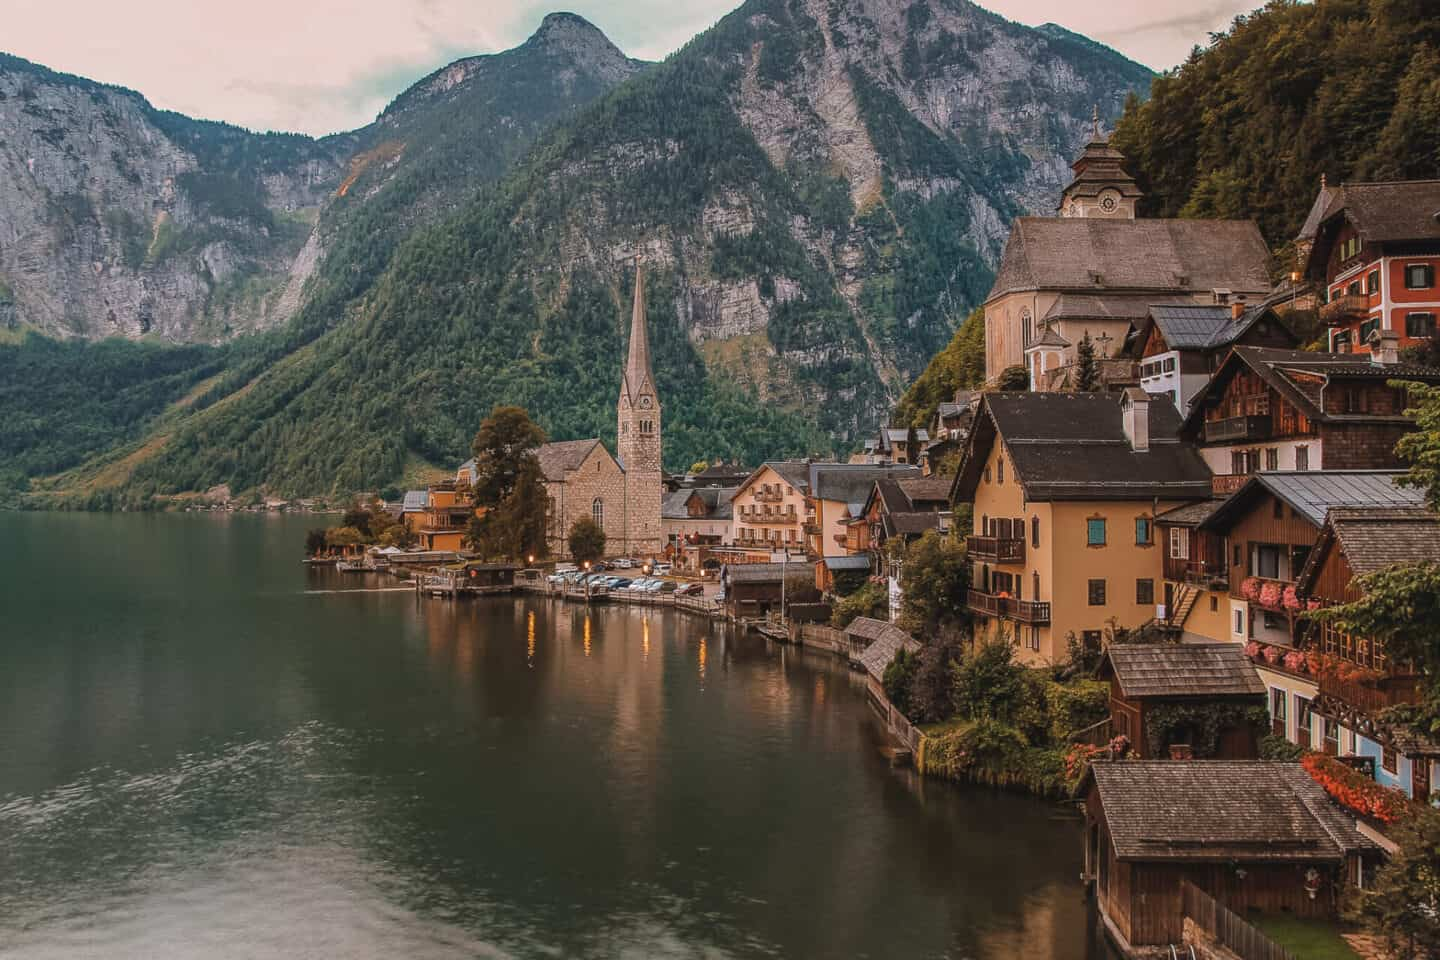 An Austrian village in between green mountains over looking a large lake.